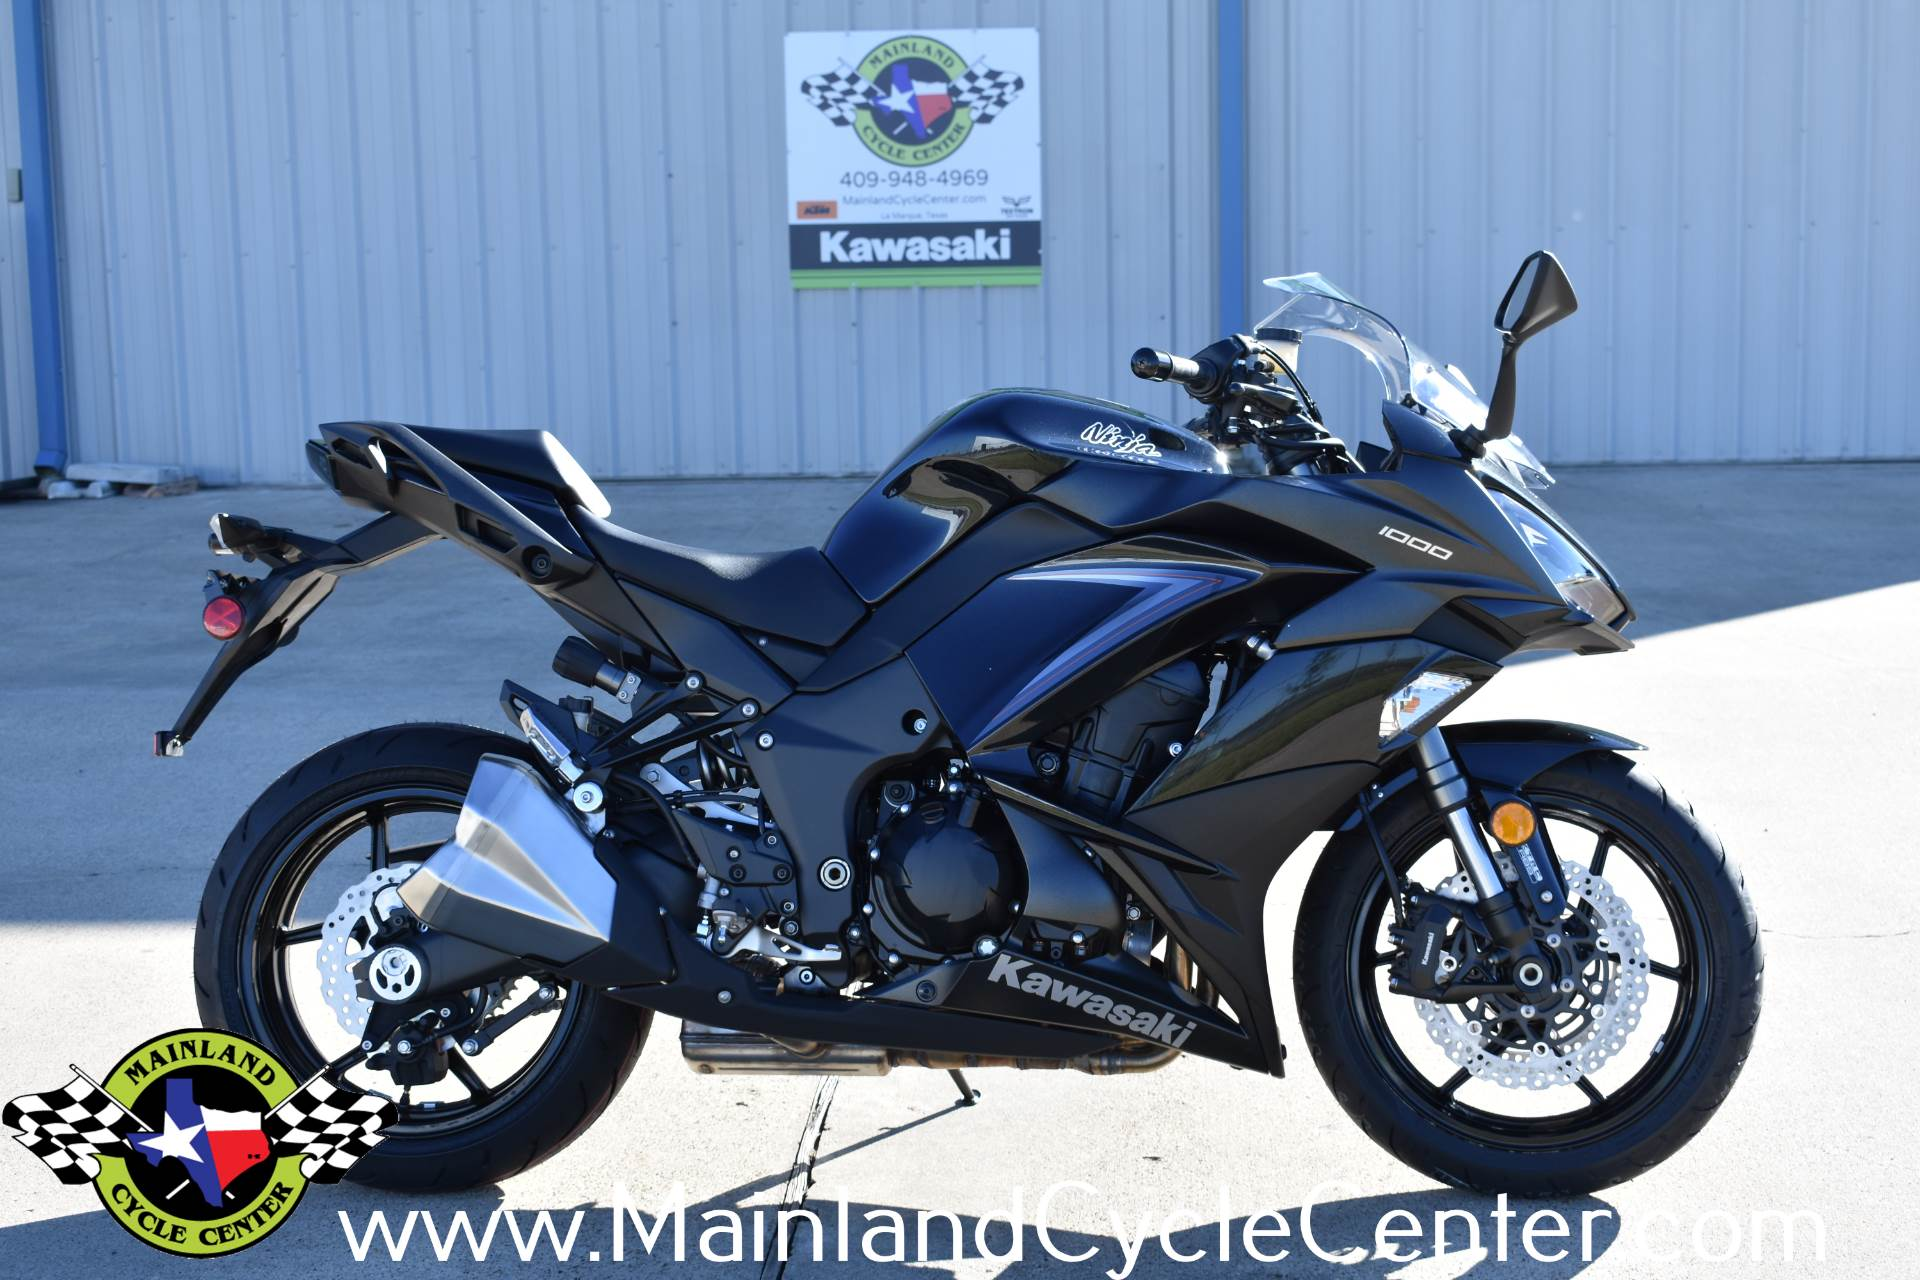 New 2019 Kawasaki Ninja 1000 Abs Metallic Spark Black Metallic